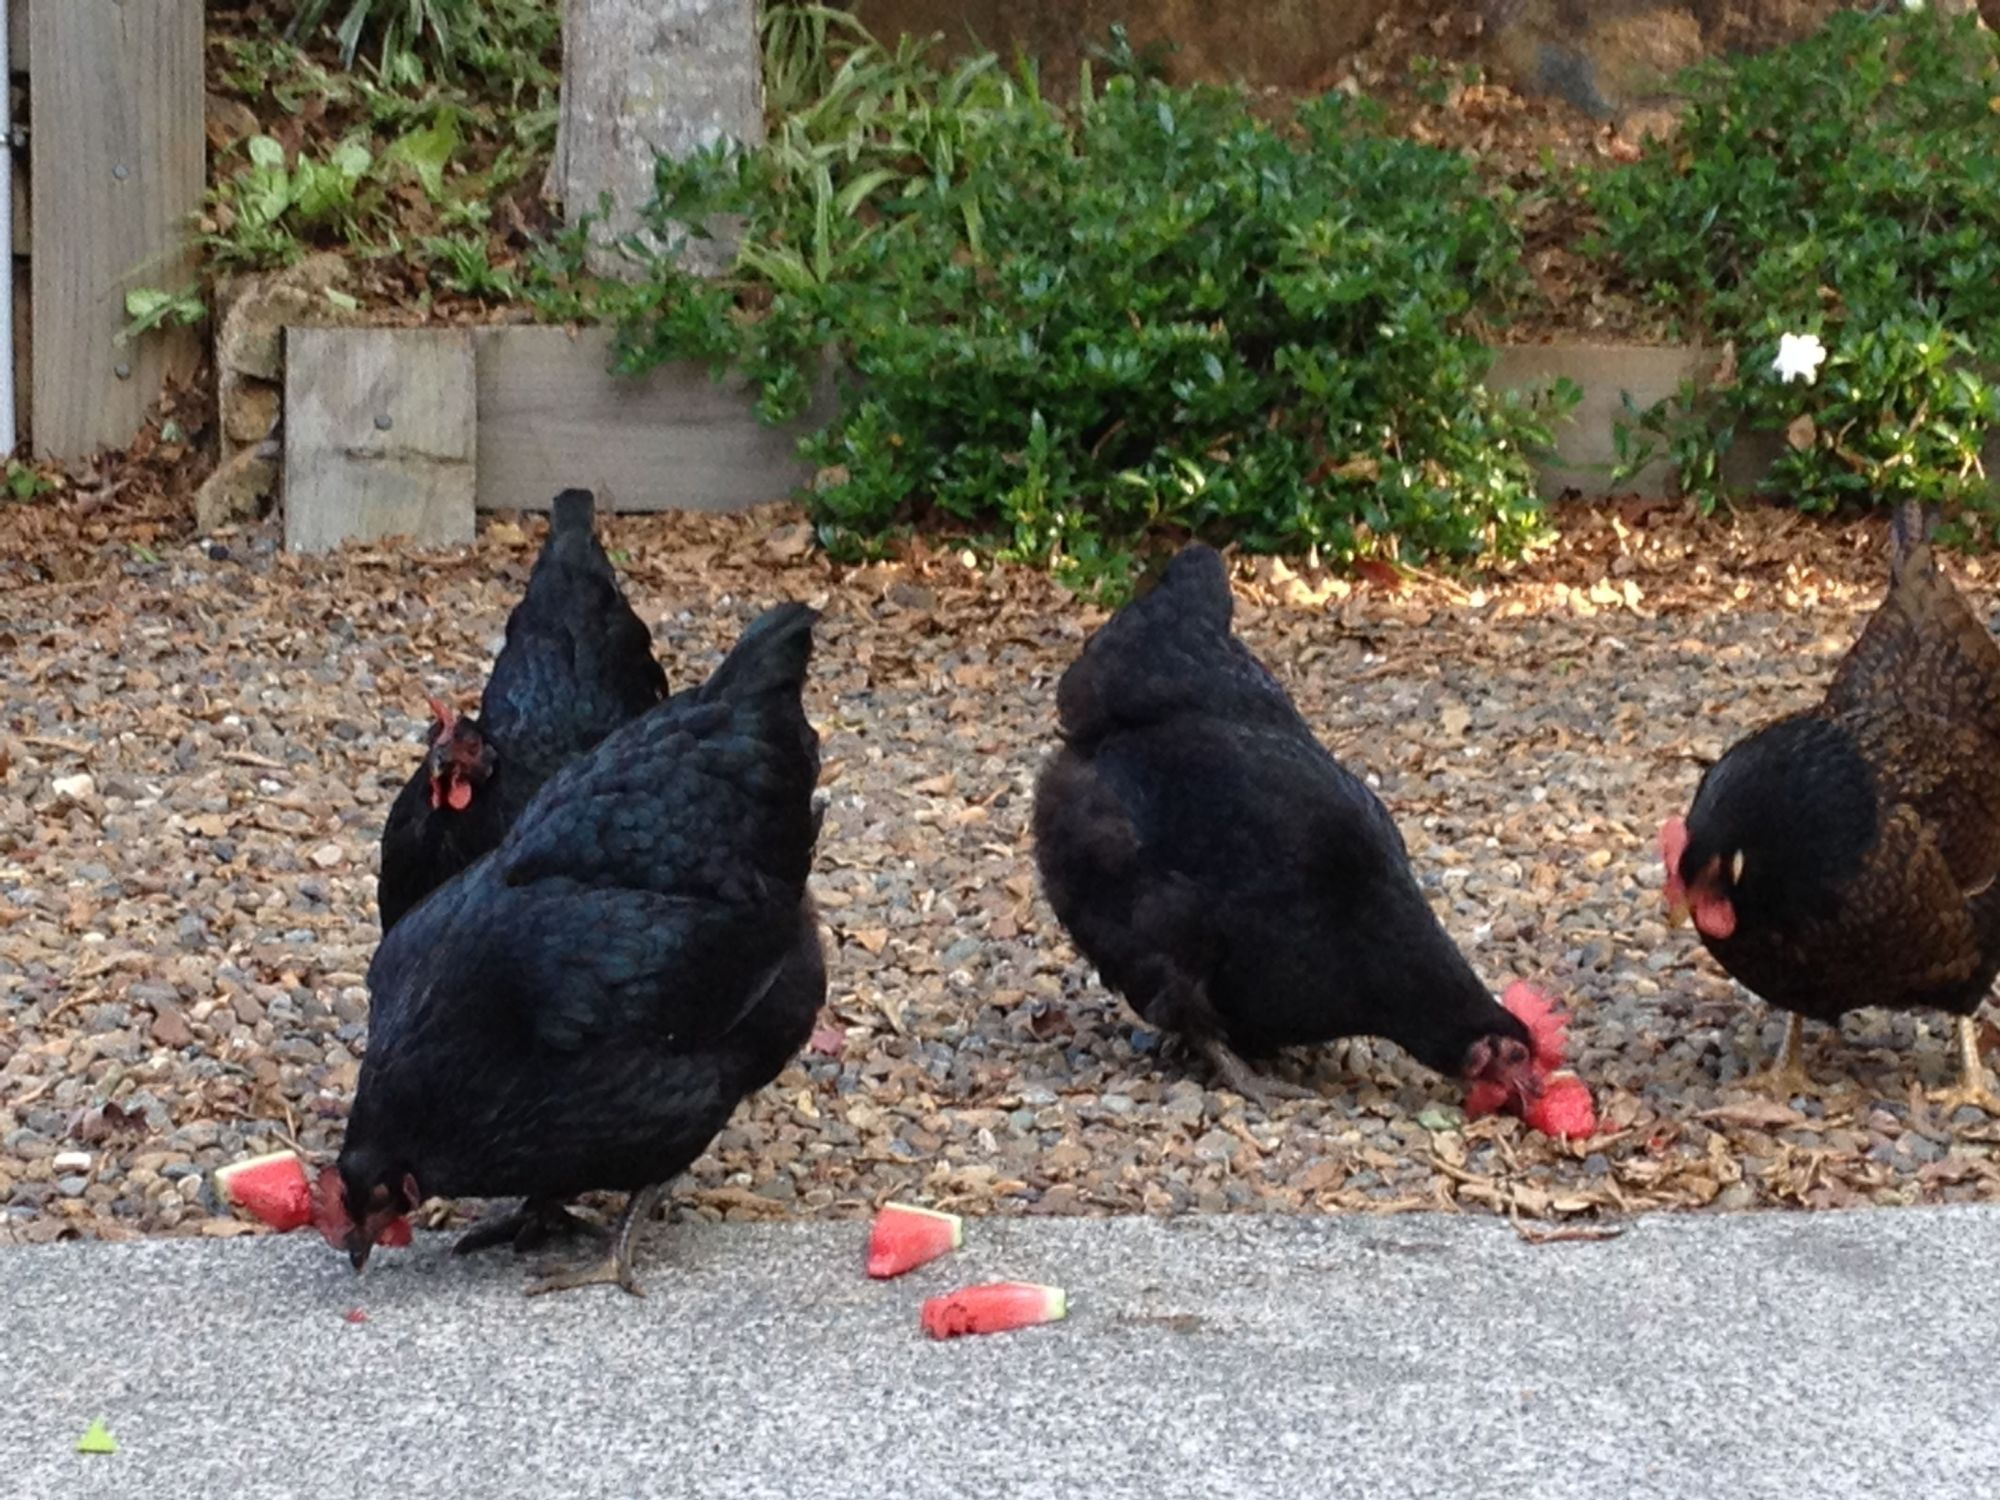 These are my four beautiful chickens who roam over an acre and a 1/4 of land. After a long day of roaming they love to munch on some fresh watermelon in the hot Aussie climate.